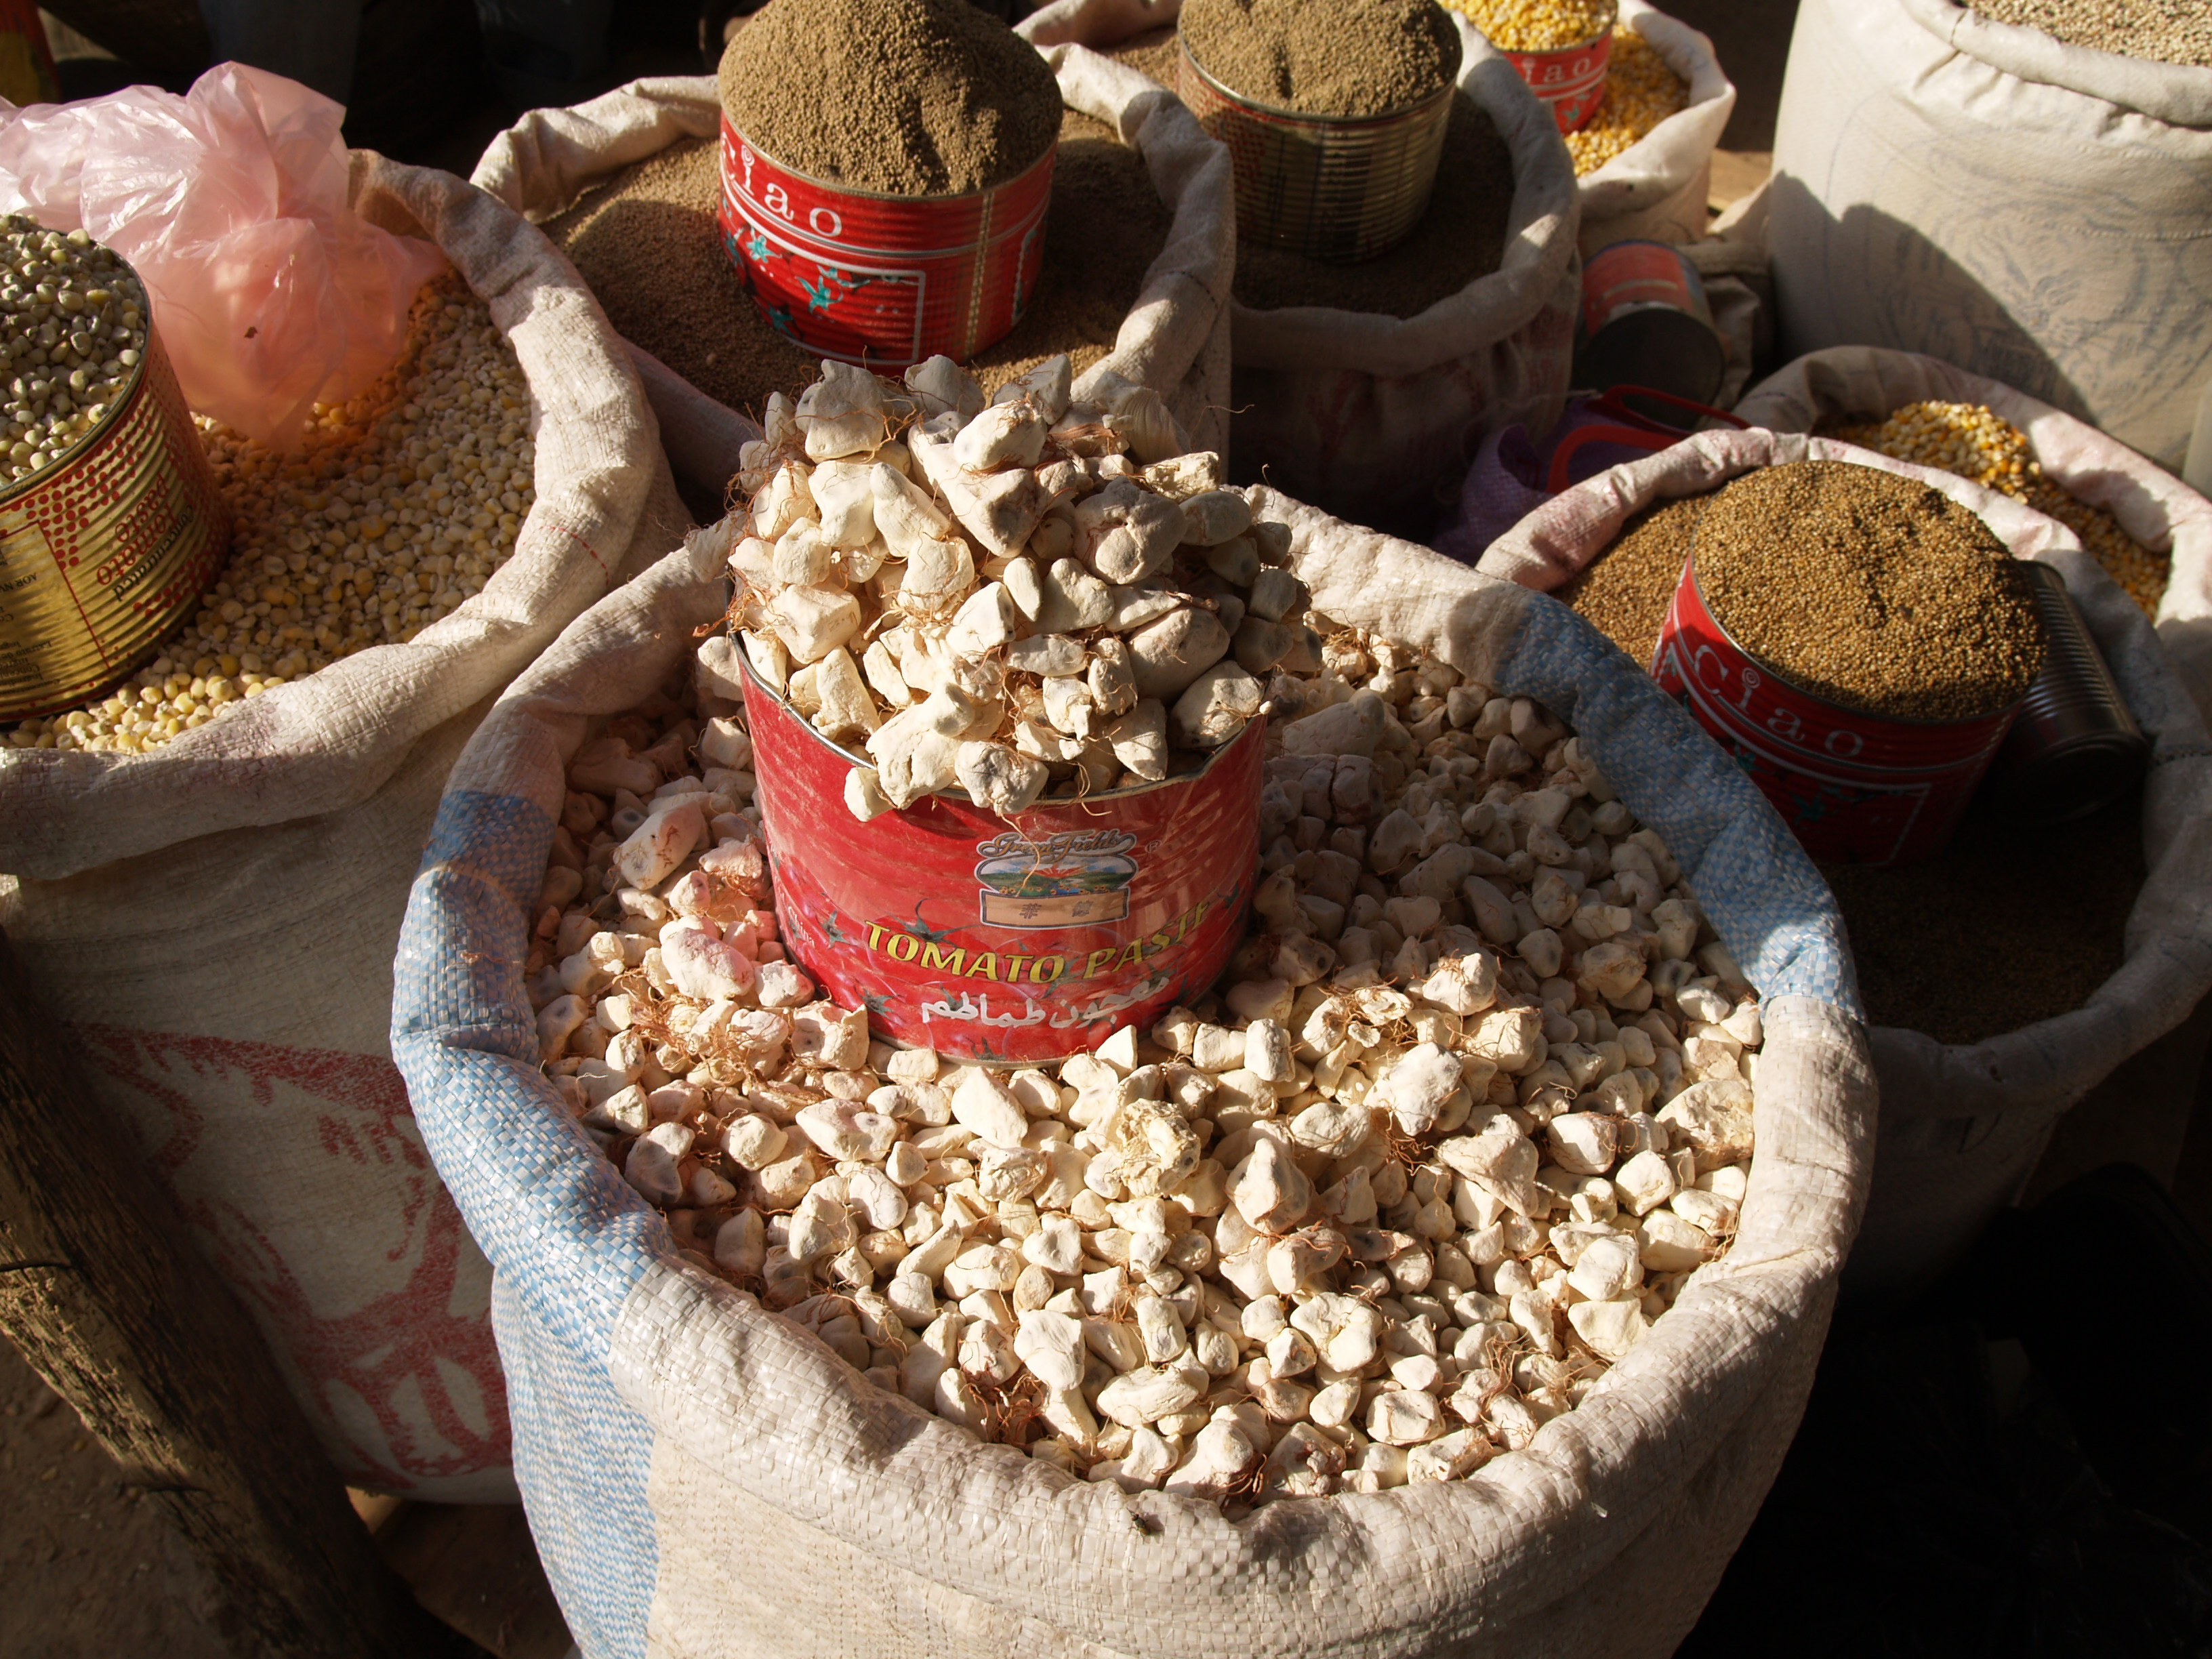 Dried baobab fruit makes extremely nutritious - and delicious - beverages.